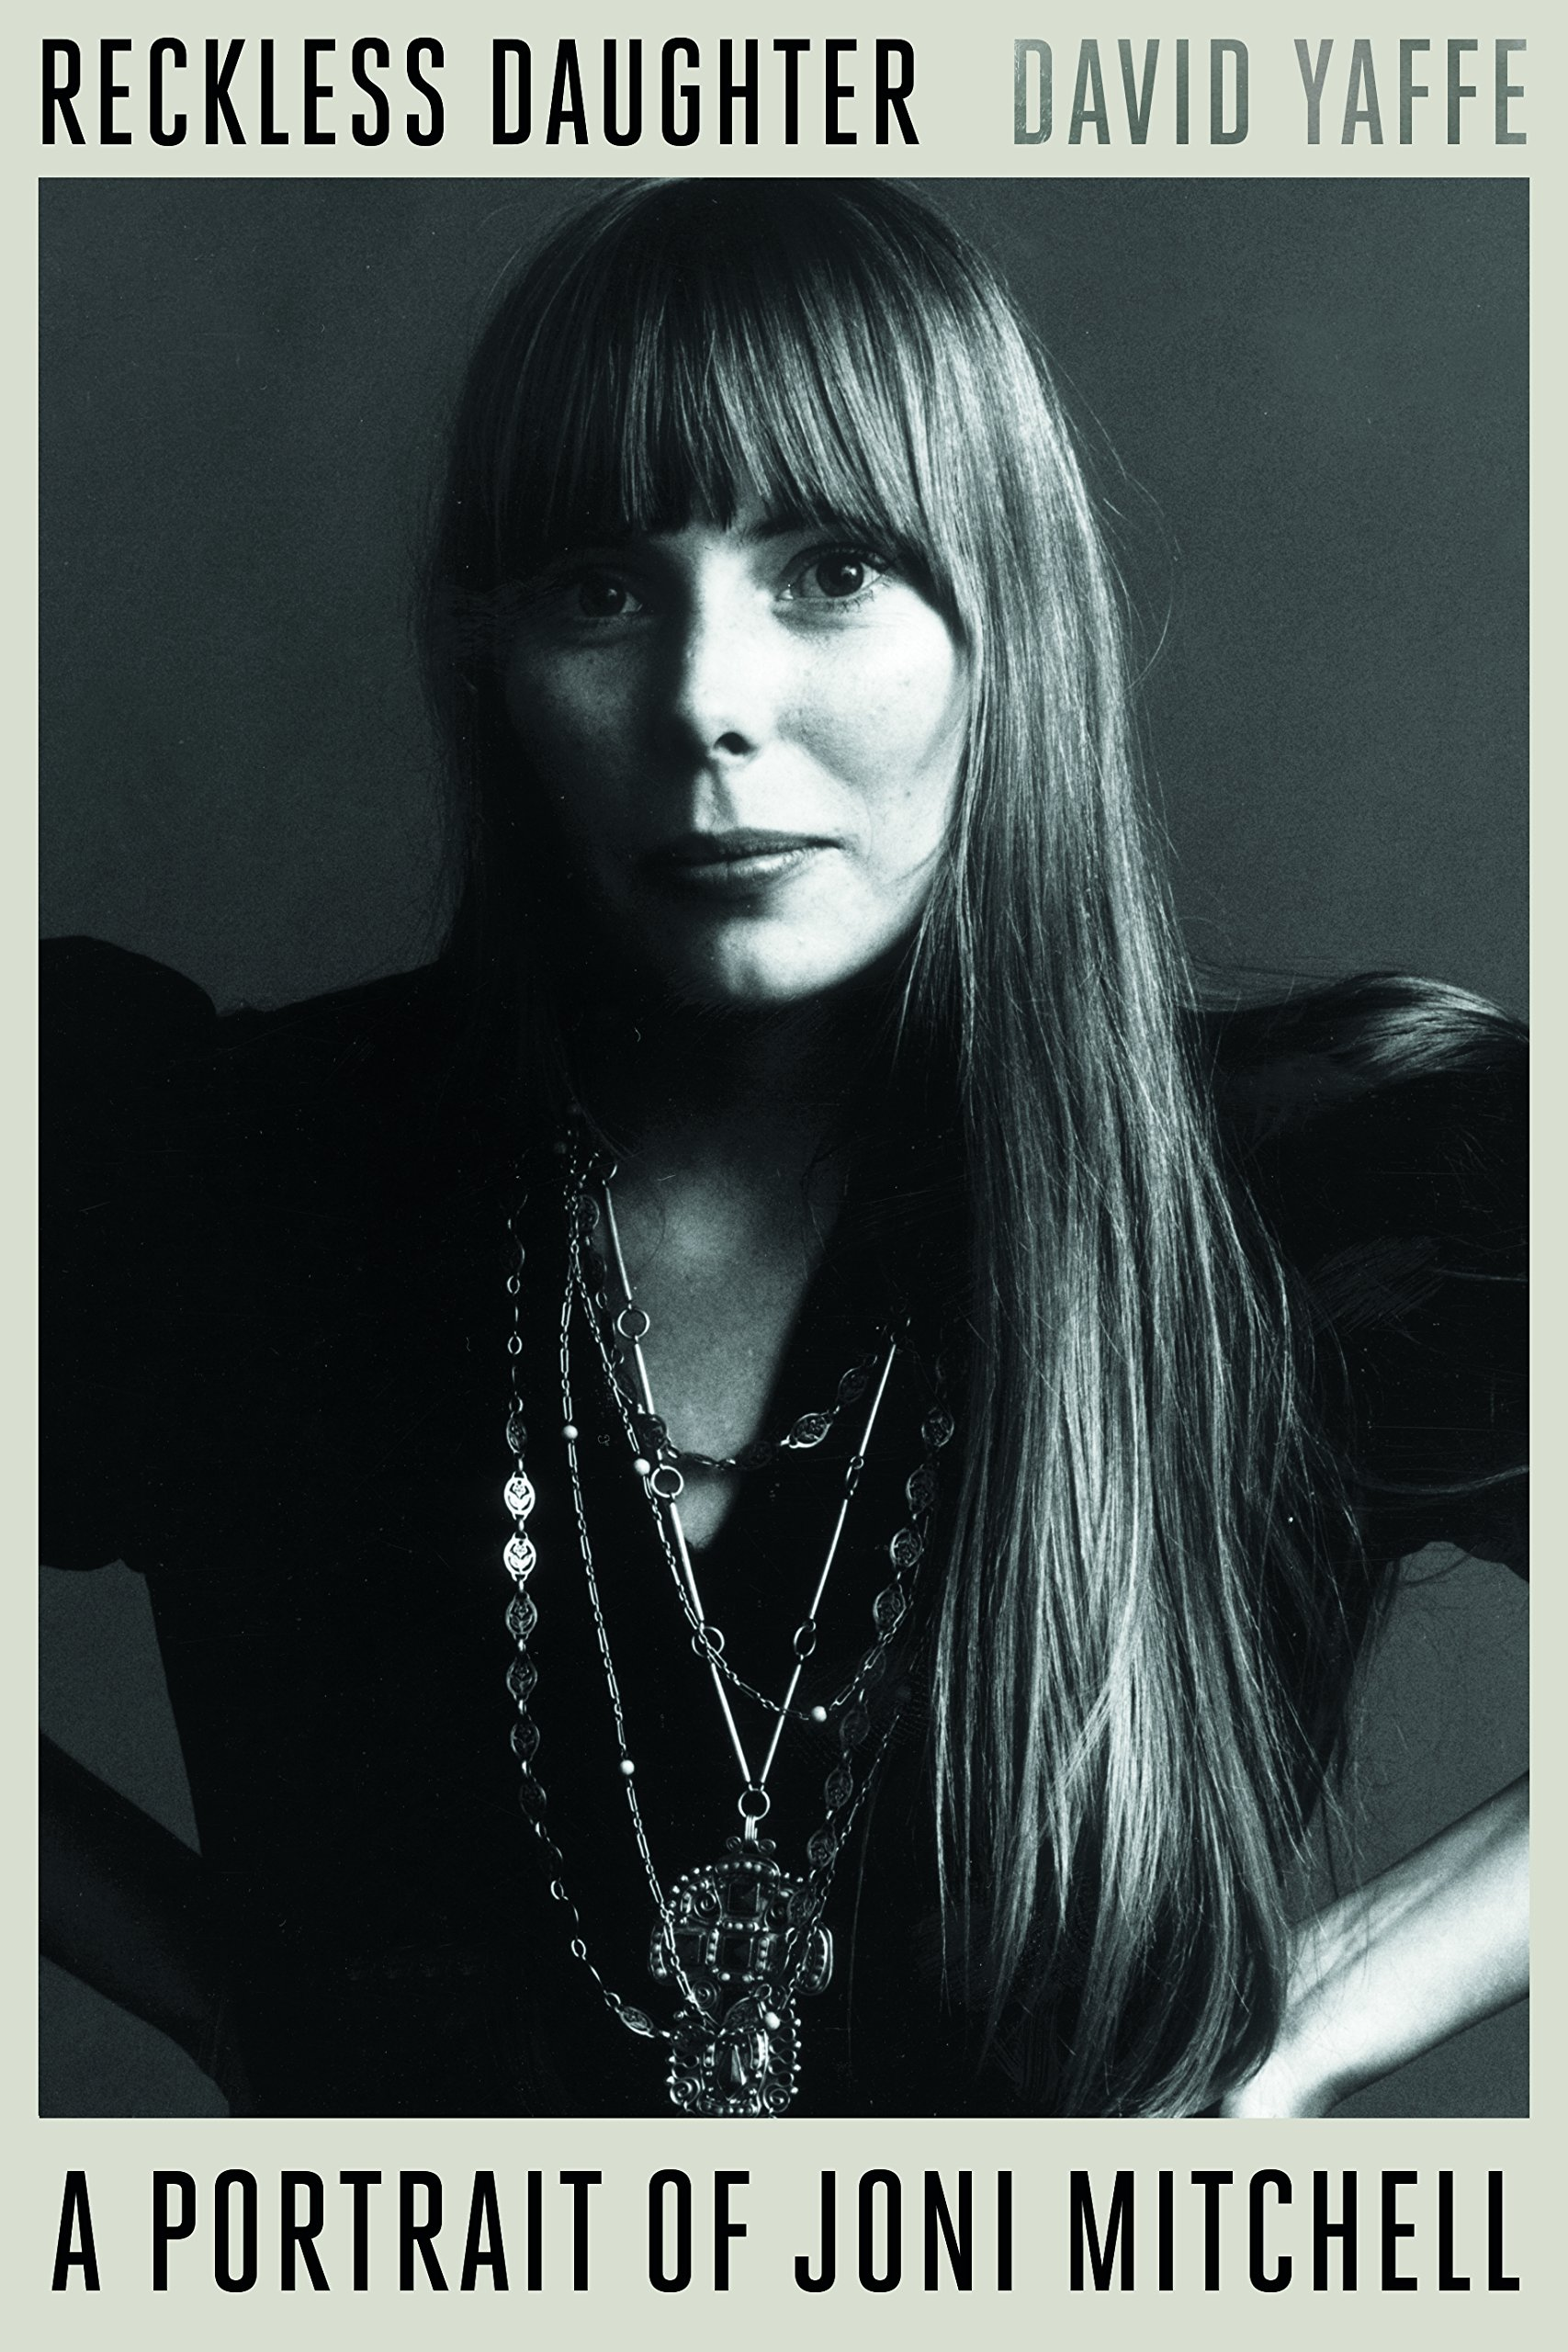 Reckless Daughter- A Portrait of Joni Mitchell